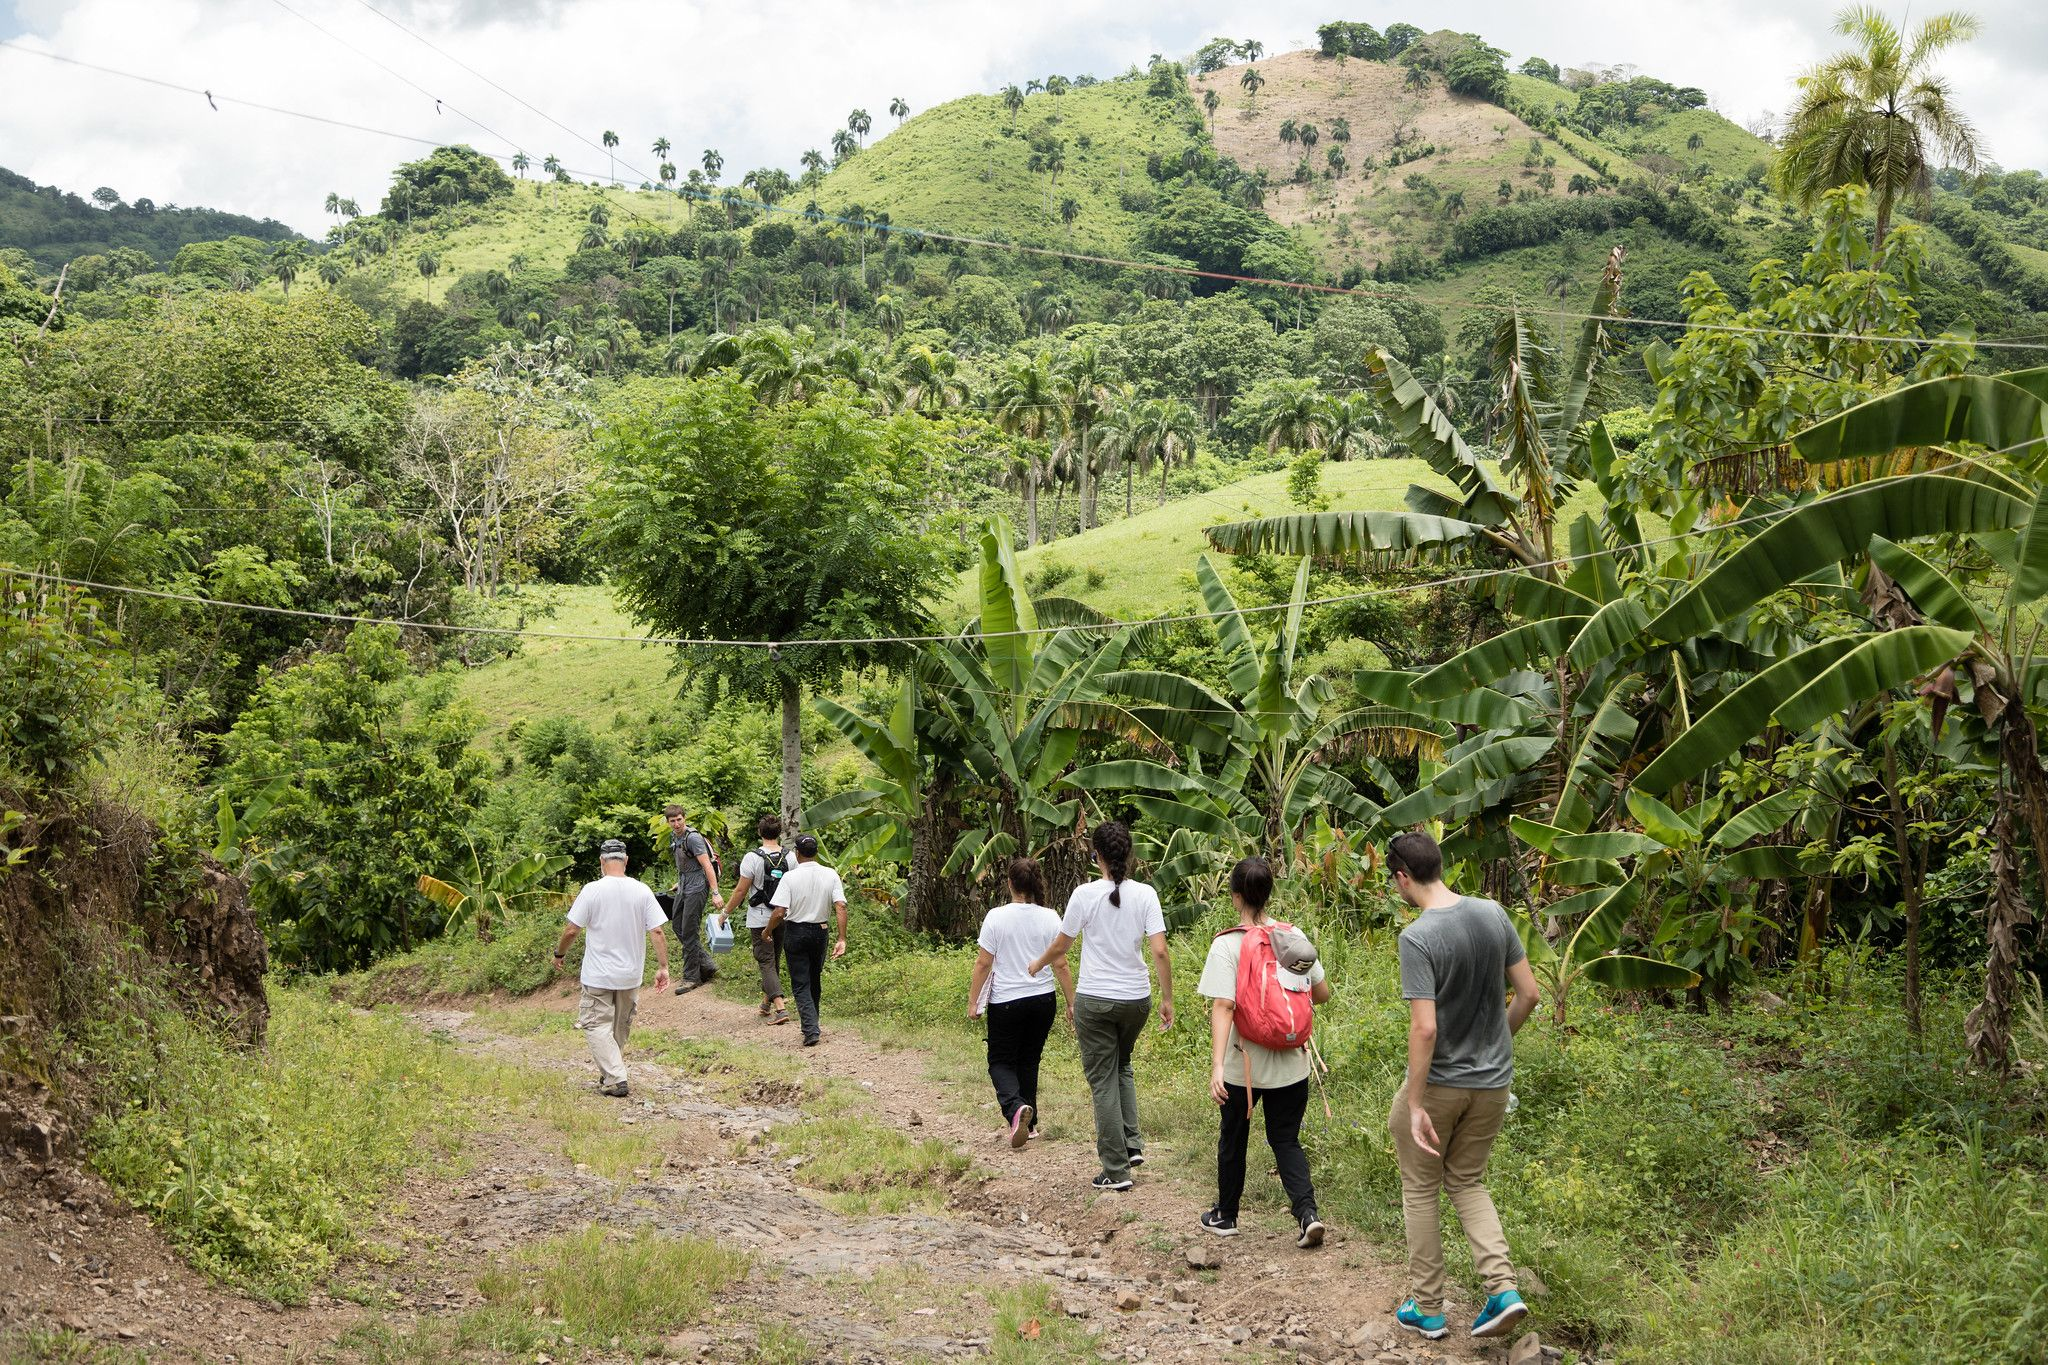 Students hike through the rural countryside in the Dominican Republic.